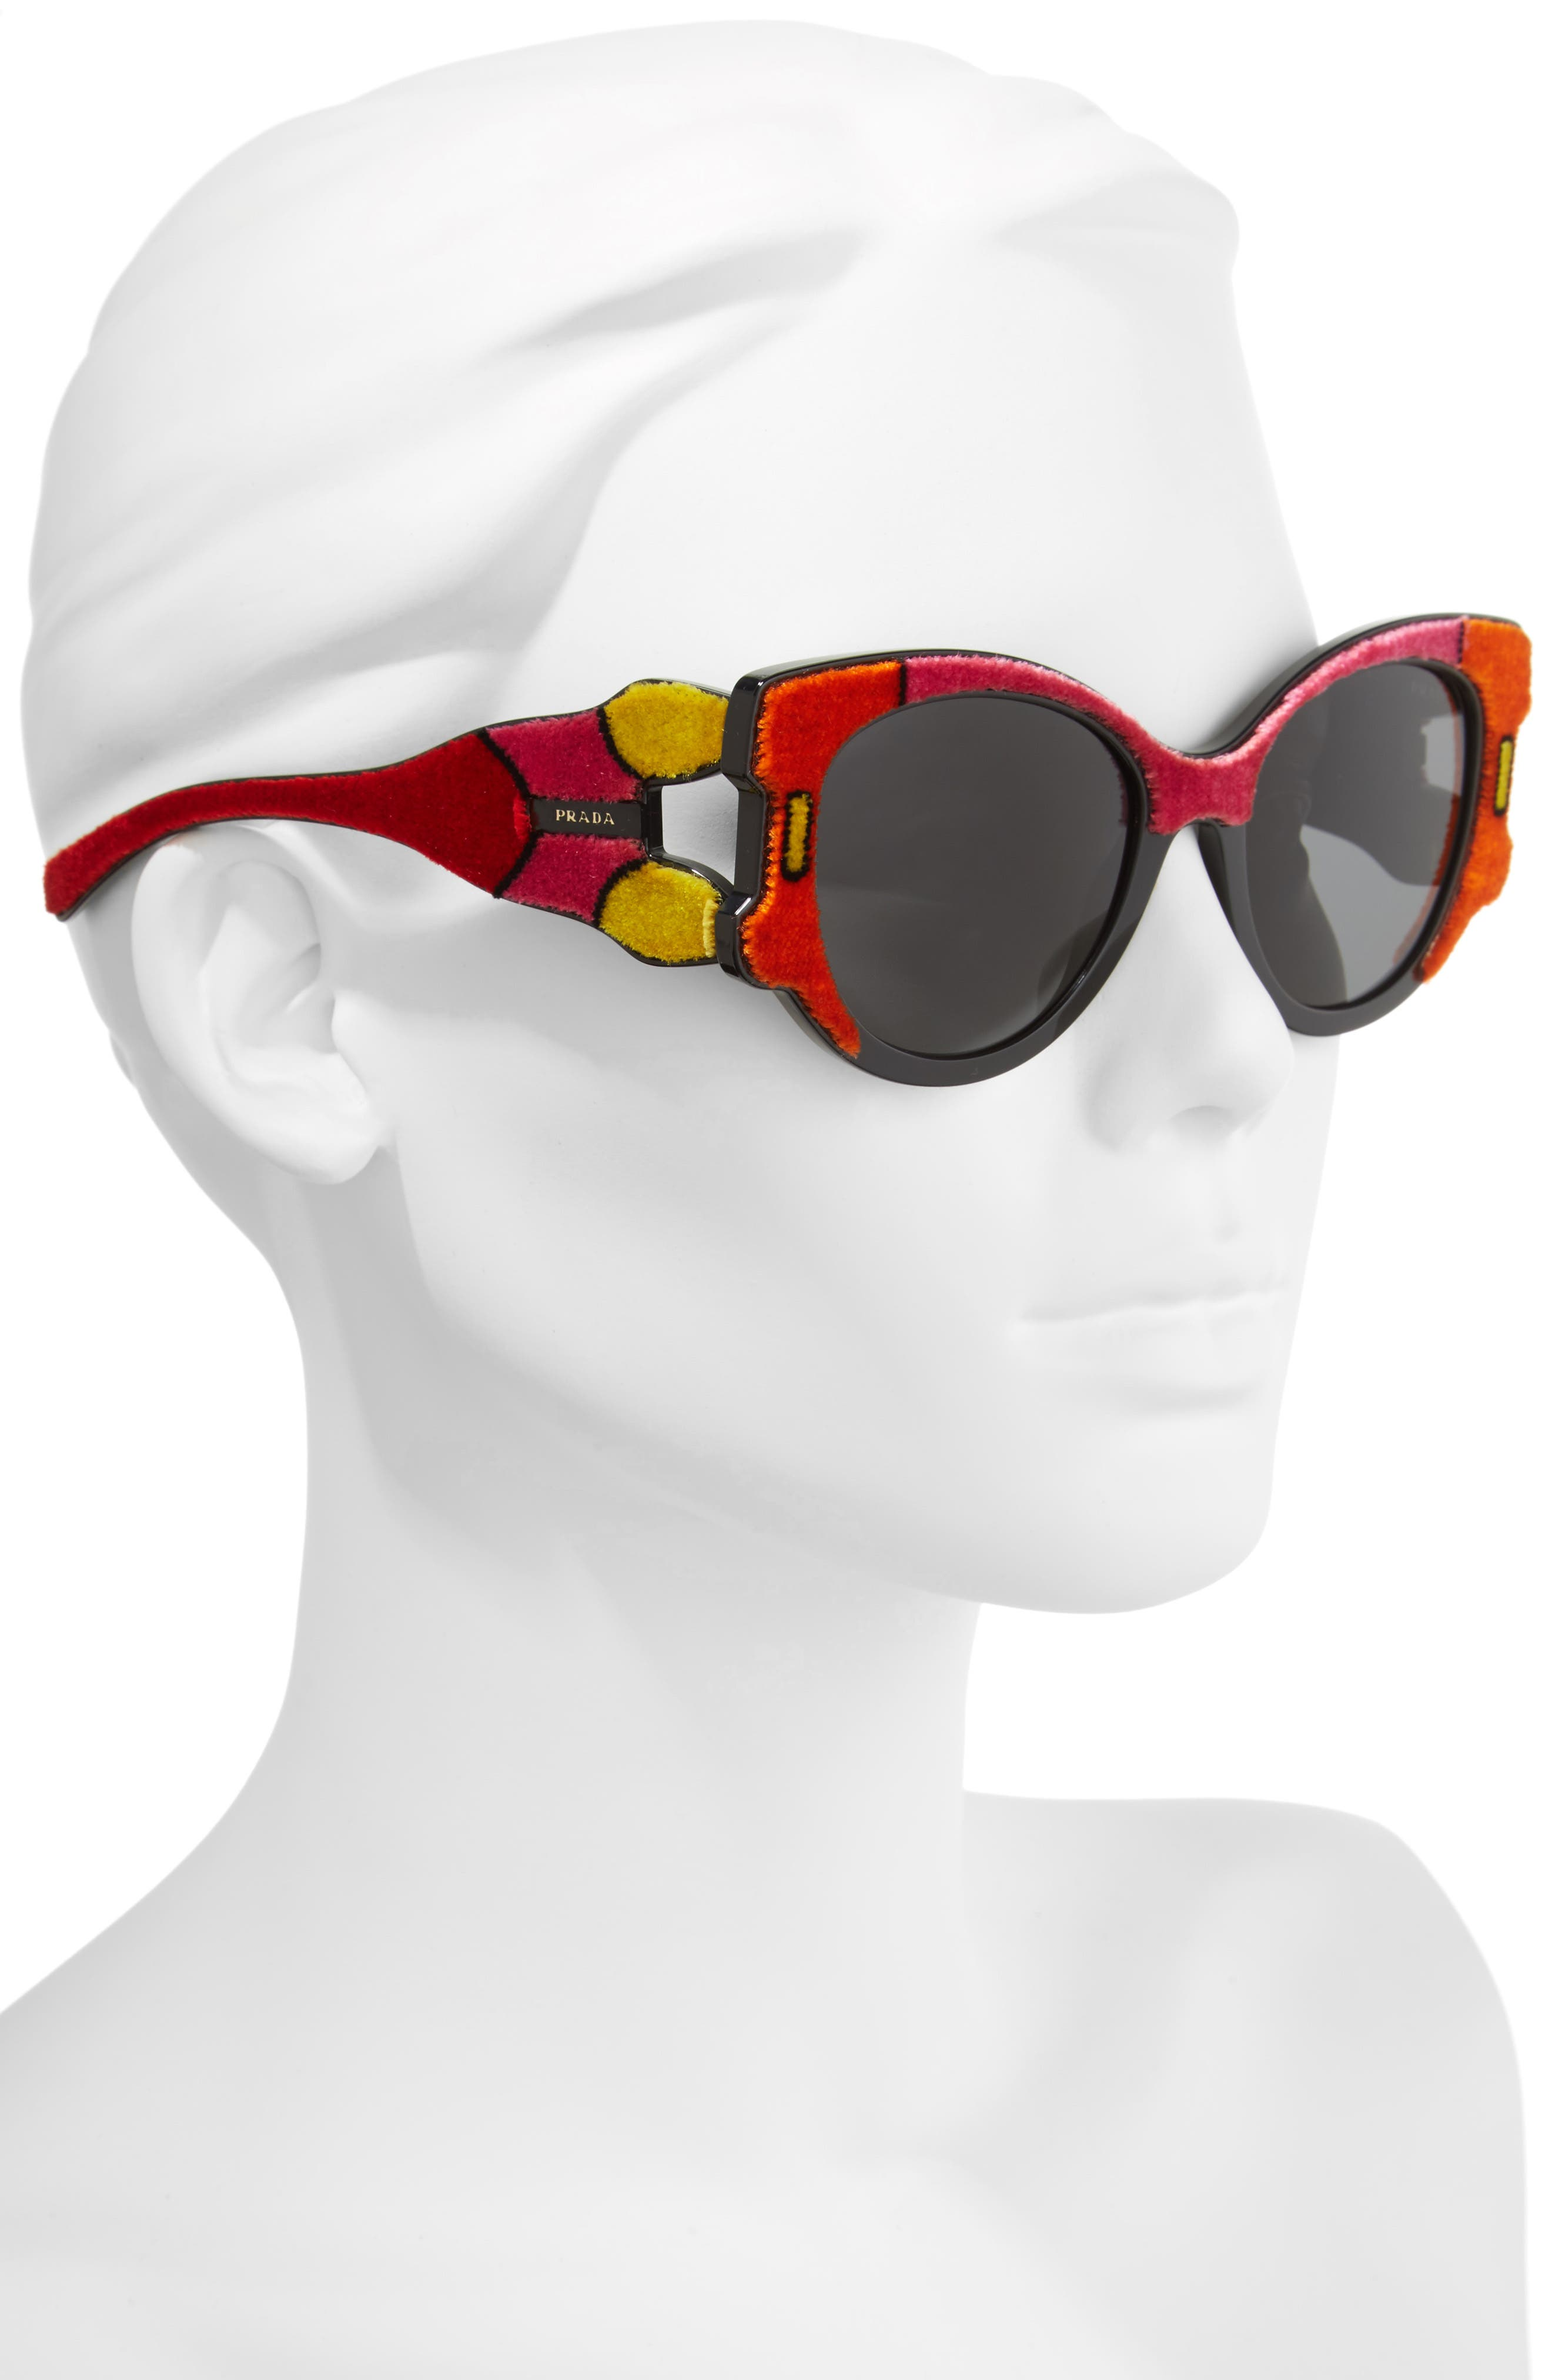 54mm Colorblock Round Sunglasses,                             Alternate thumbnail 2, color,                             Yellow